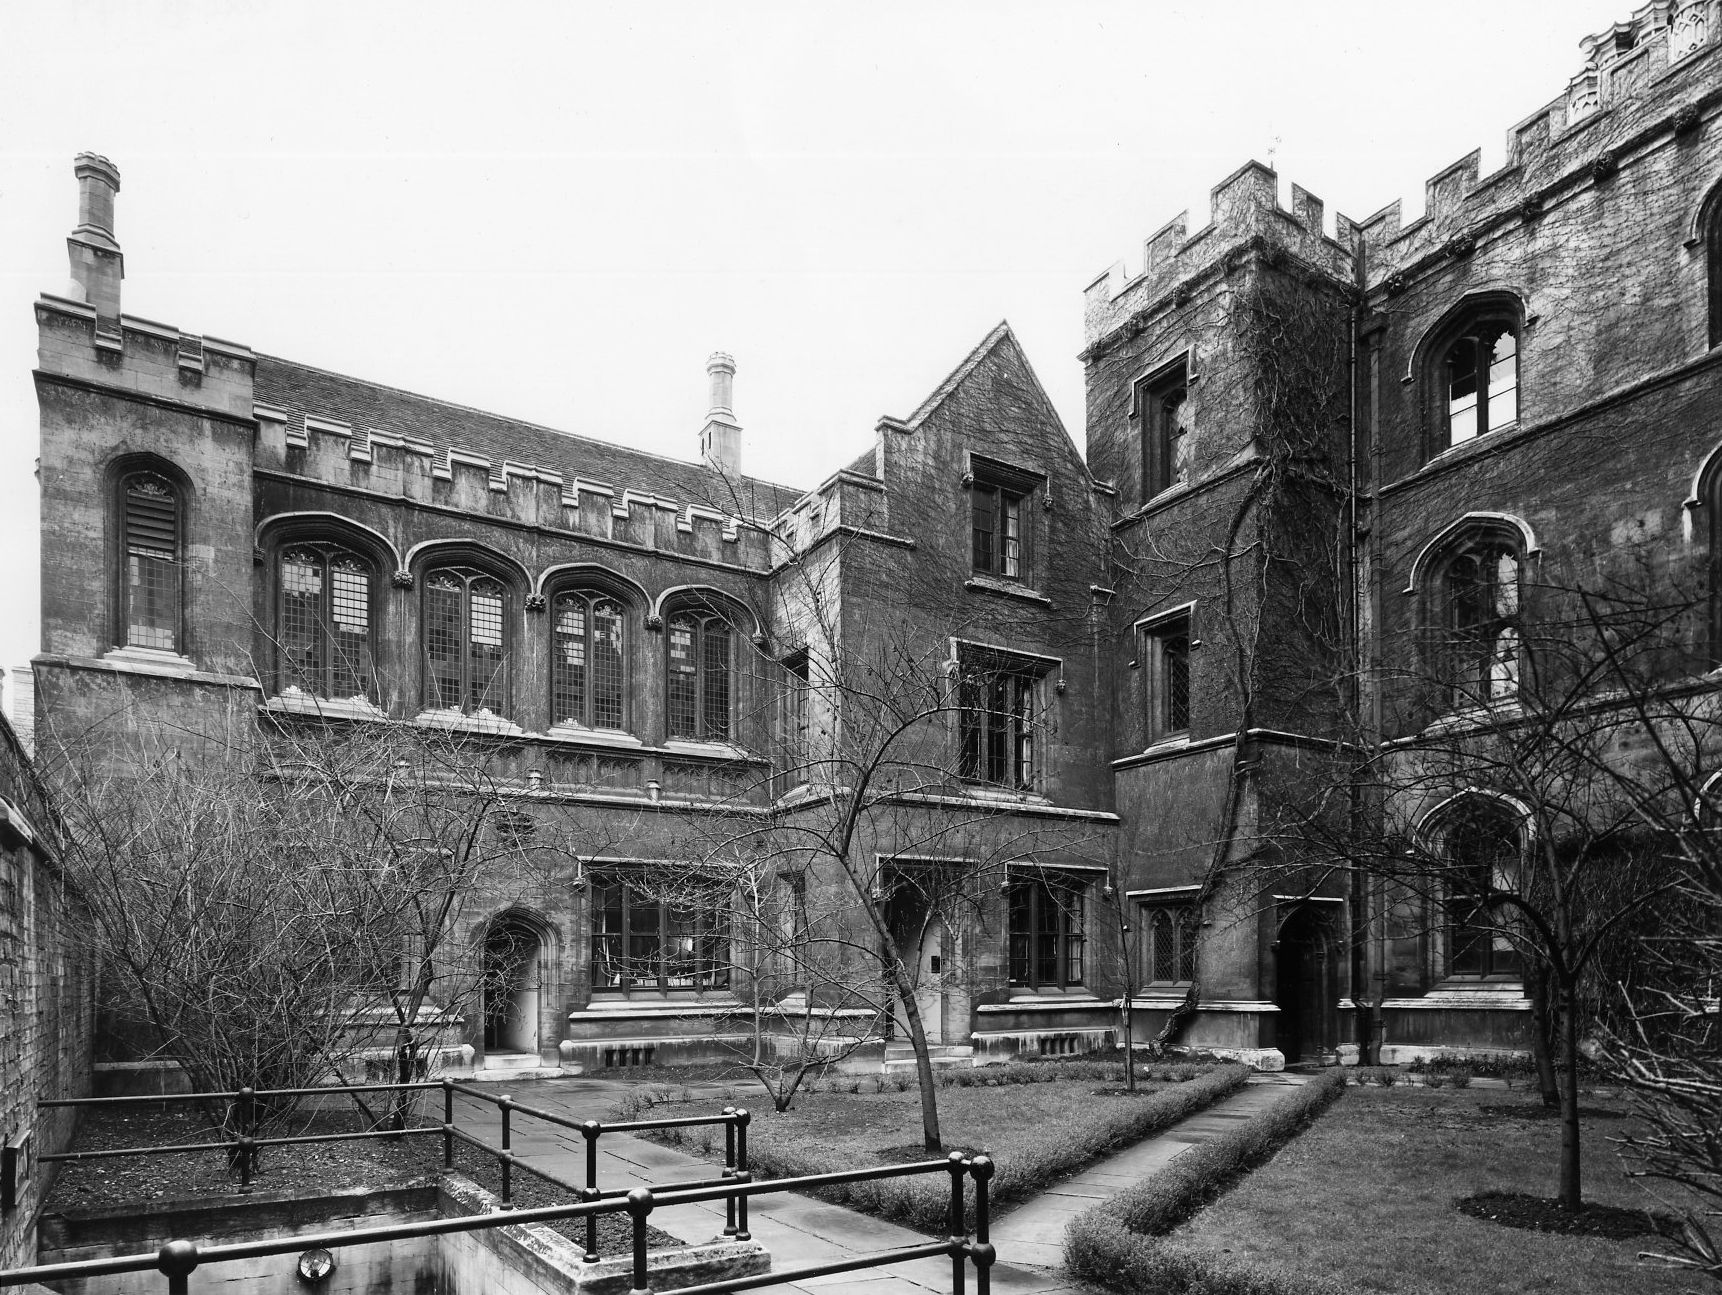 Chetwynd Court showing what is now part of the J.C.R. (B staircase of Wilkins Building), railings to 'the Drain' passing under King's Lane, and the east side of Fawcett's building (?Edward Leigh, c. 1960-1964) [Coll-Ph-1149]